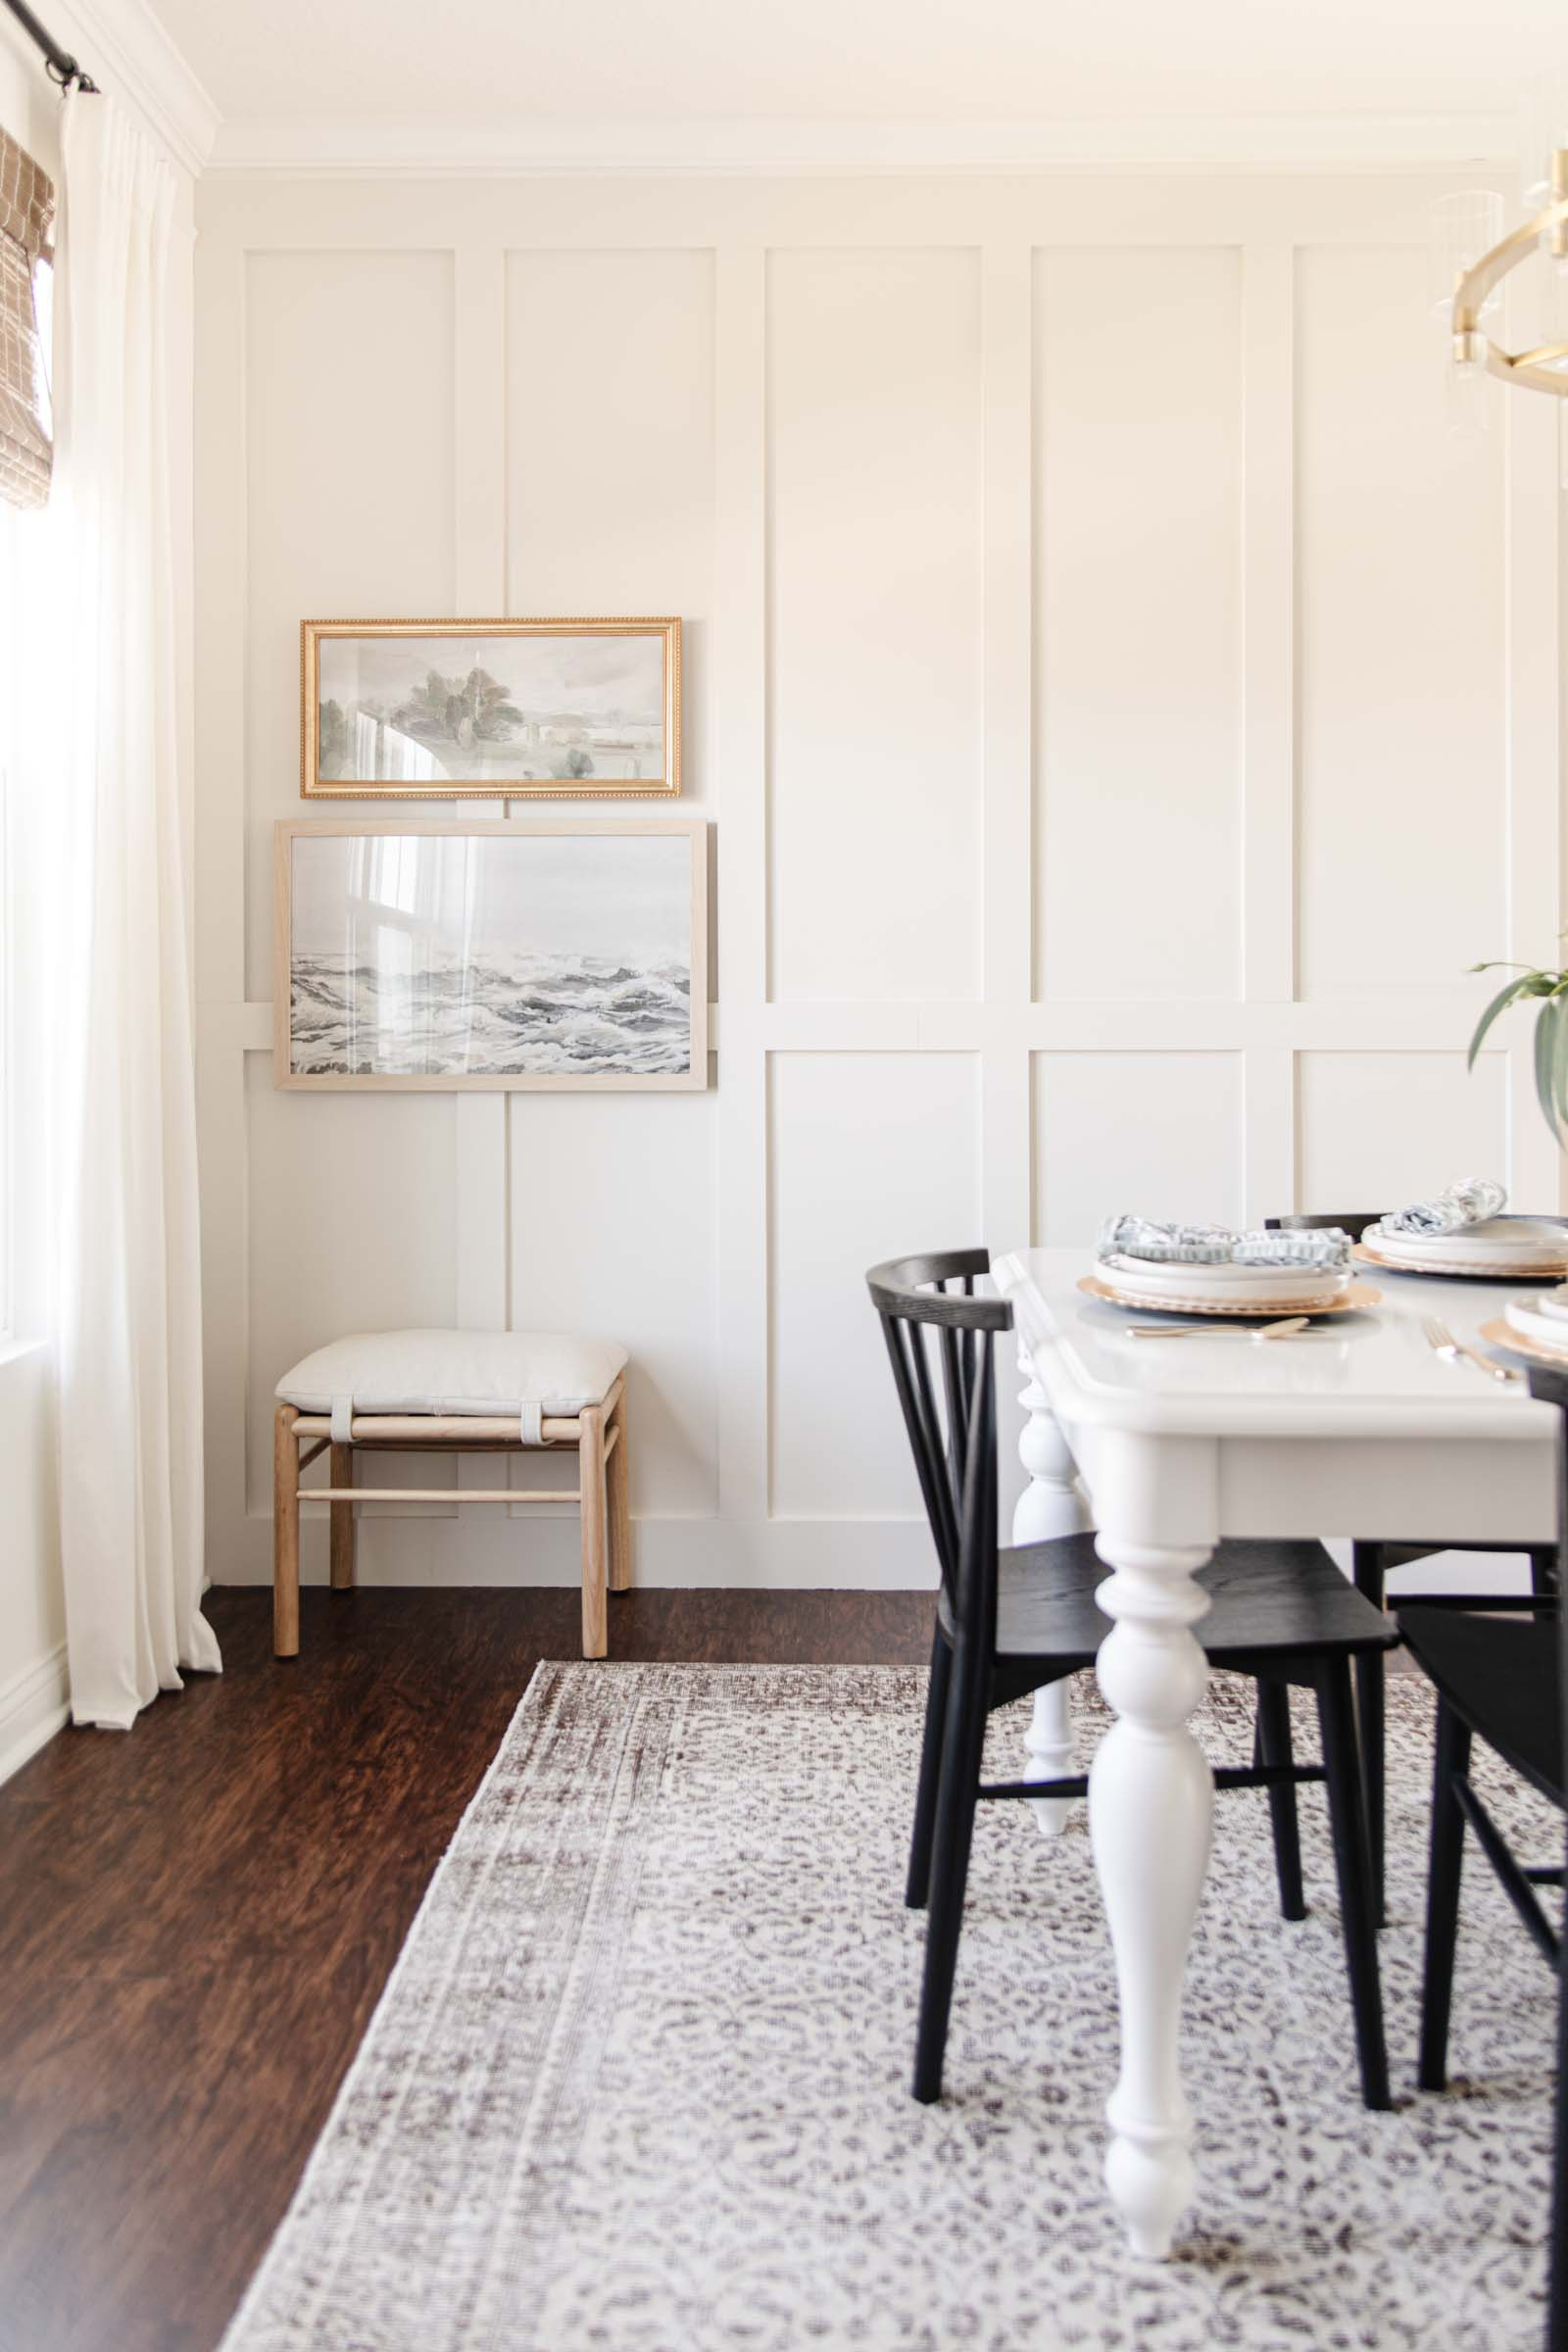 board and batten accent wall, wooden stool